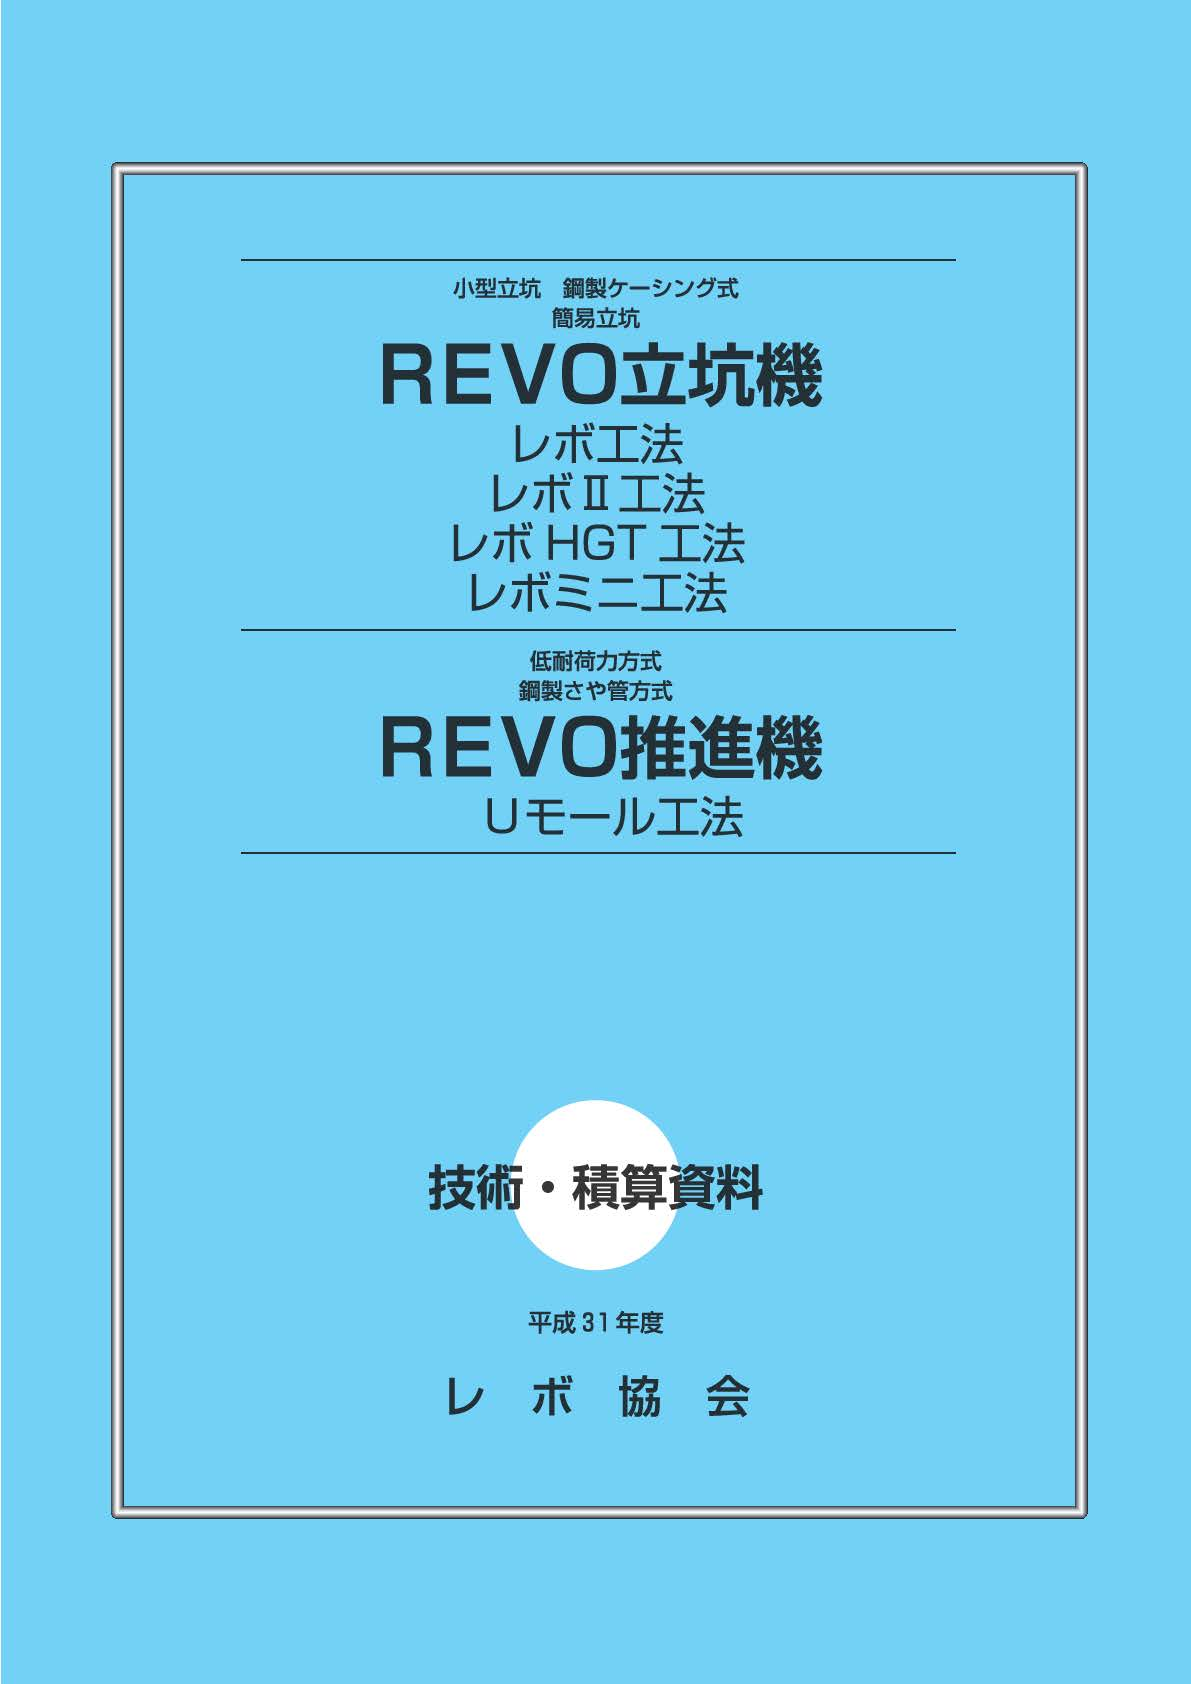 REVO2019-1_technique_ページ_01